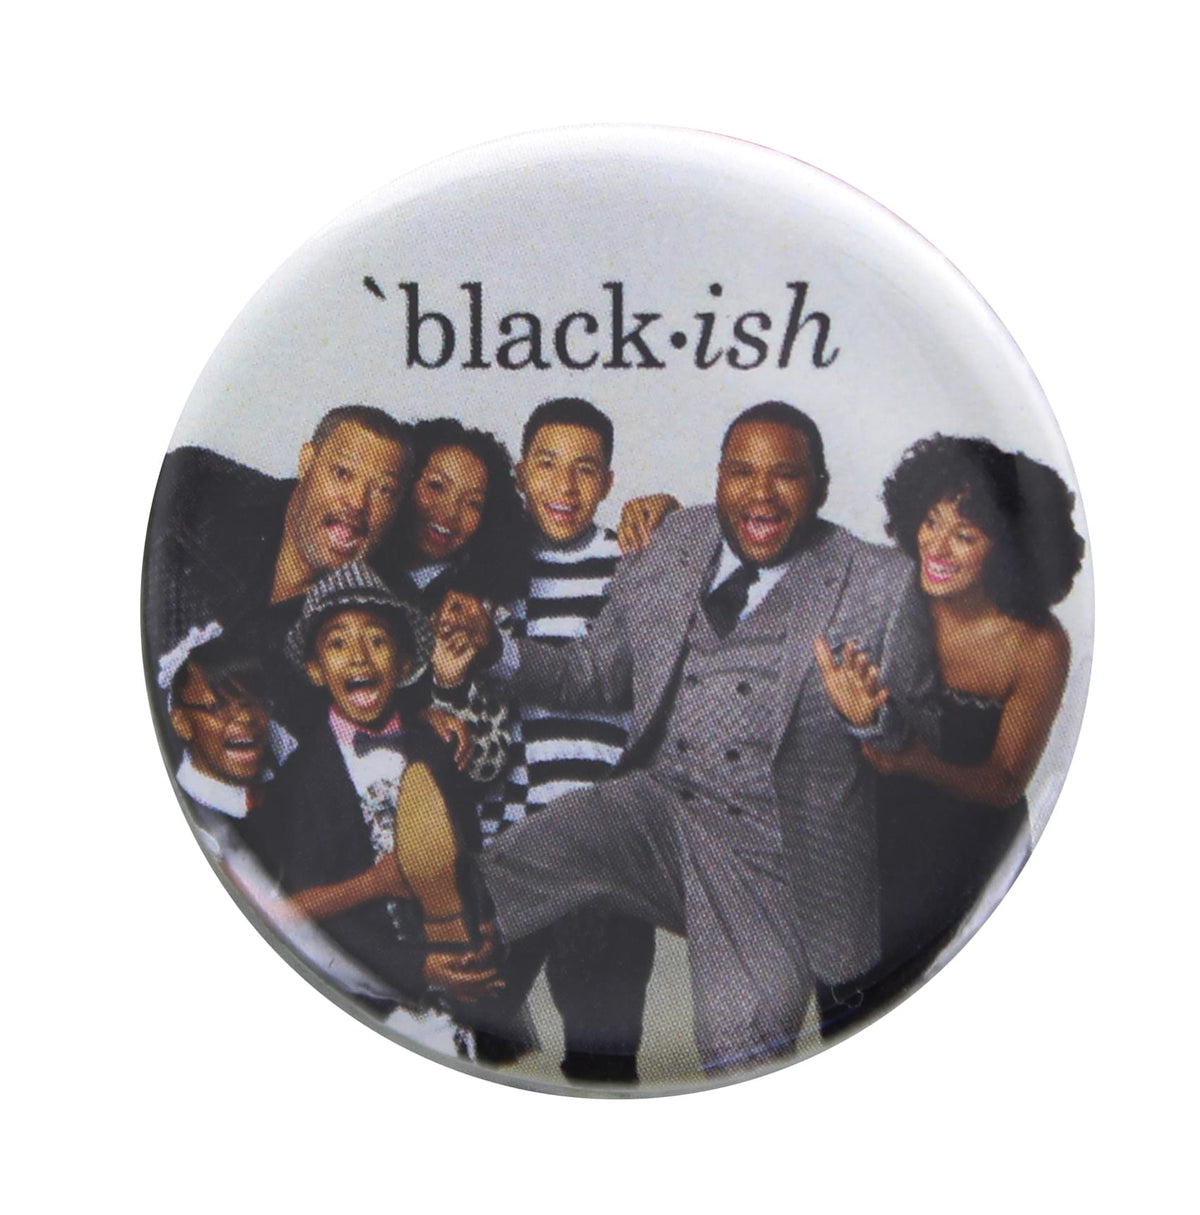 Black-ish Family 1.25 Inch Collectible Button Pin